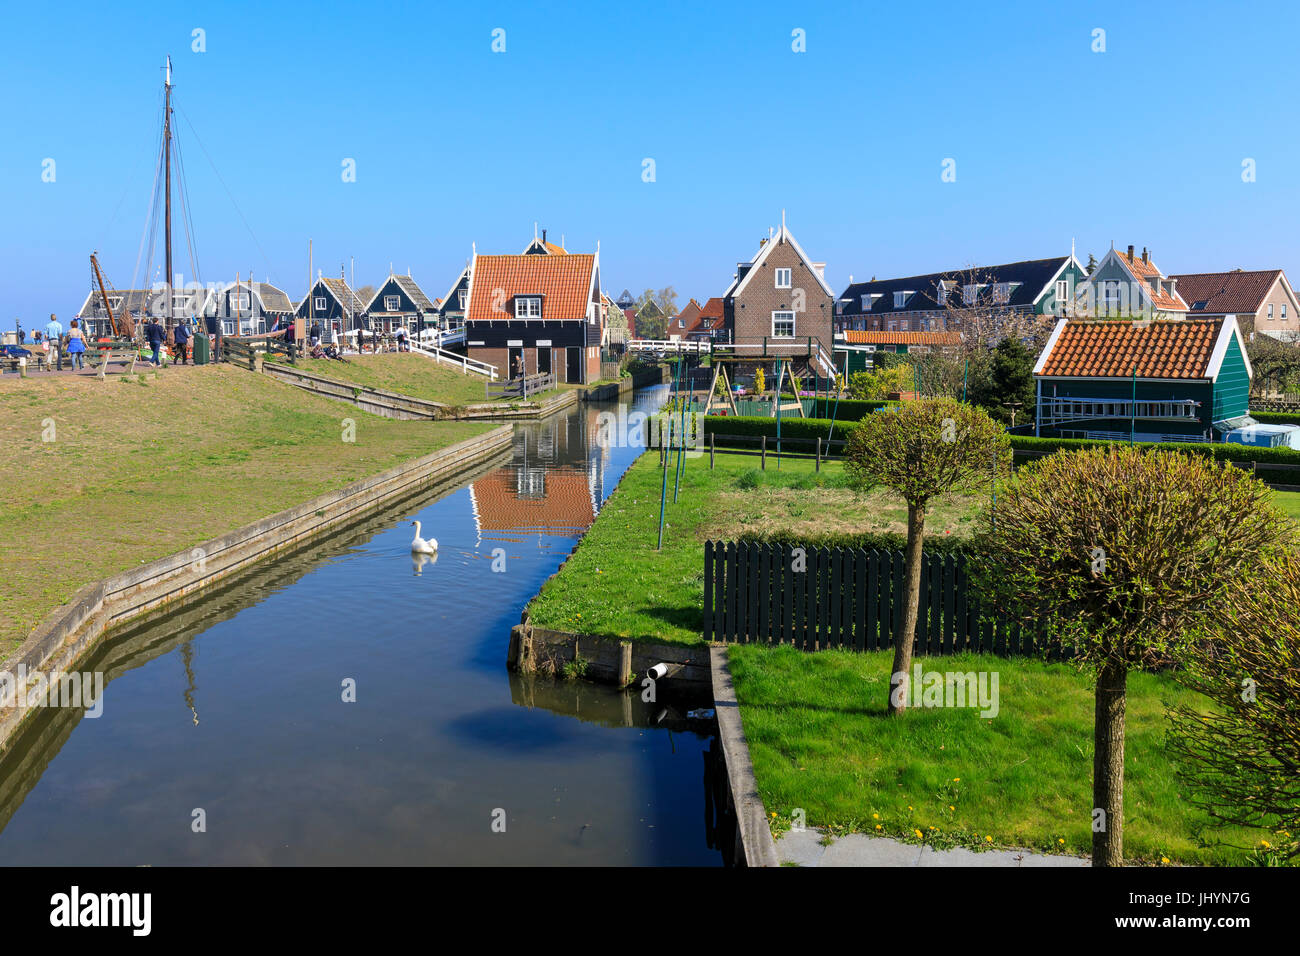 White swan in the canal surrounded by meadows and typical wooden houses, Marken, Waterland, North Holland, The Netherlands - Stock Image